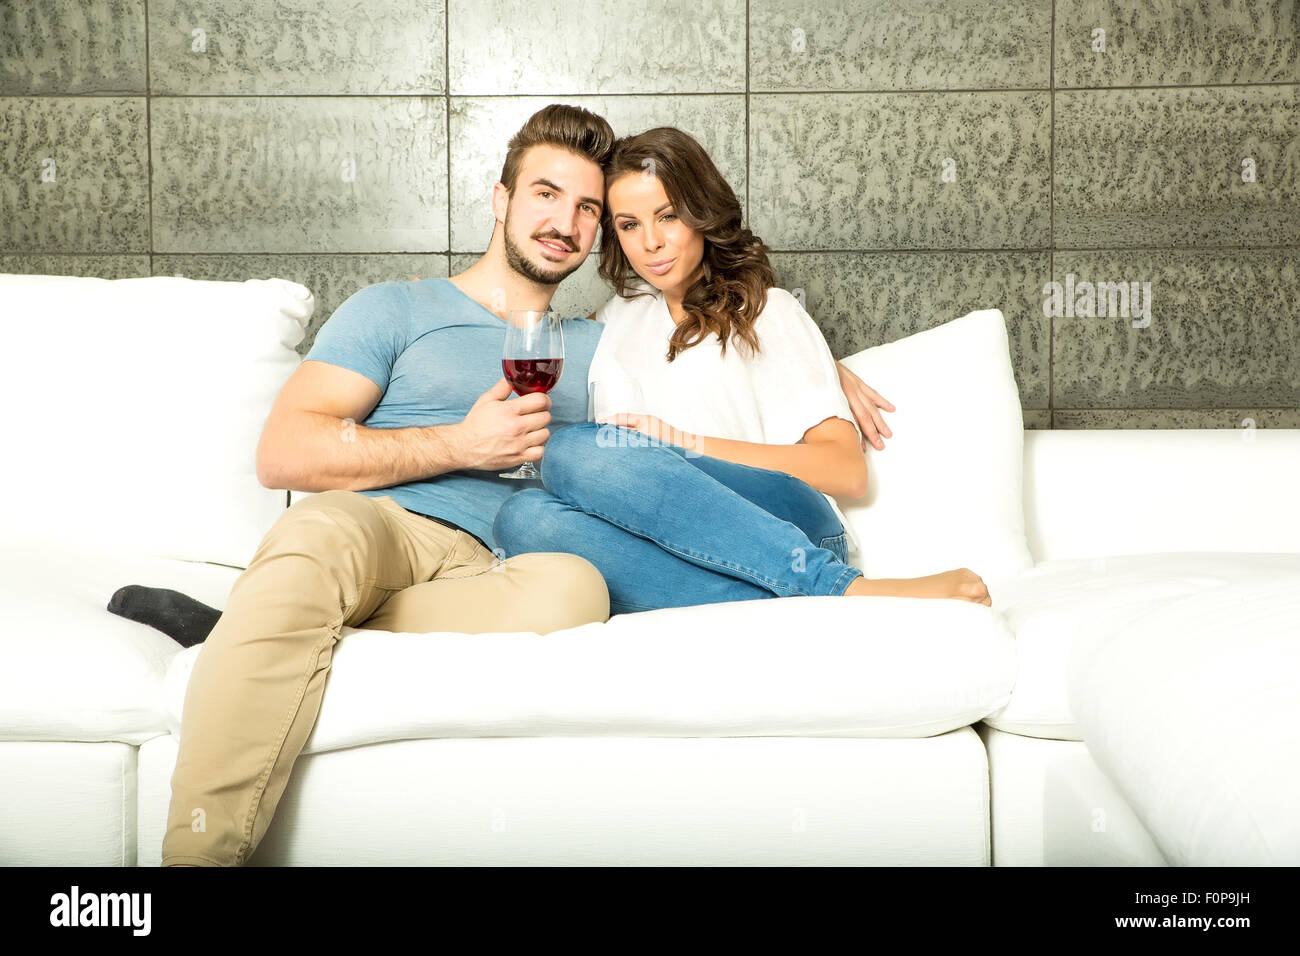 A young couple in the living room enjoying a glass of red wine on the sofa. Stock Photo